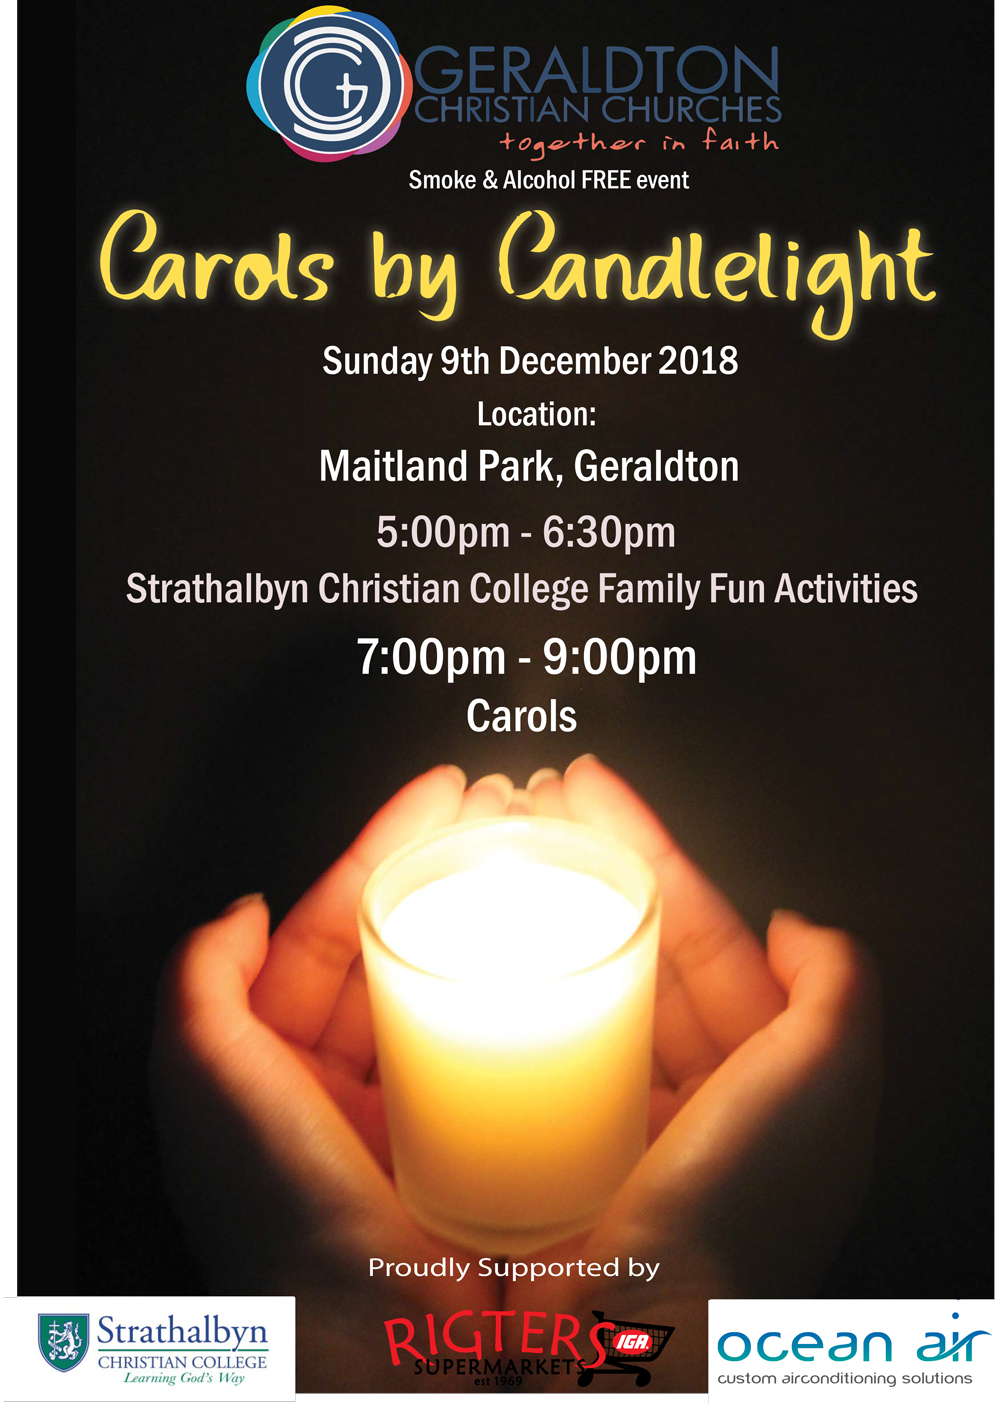 17967424_Carols-by-Candlelight-9-December-2018.jpg